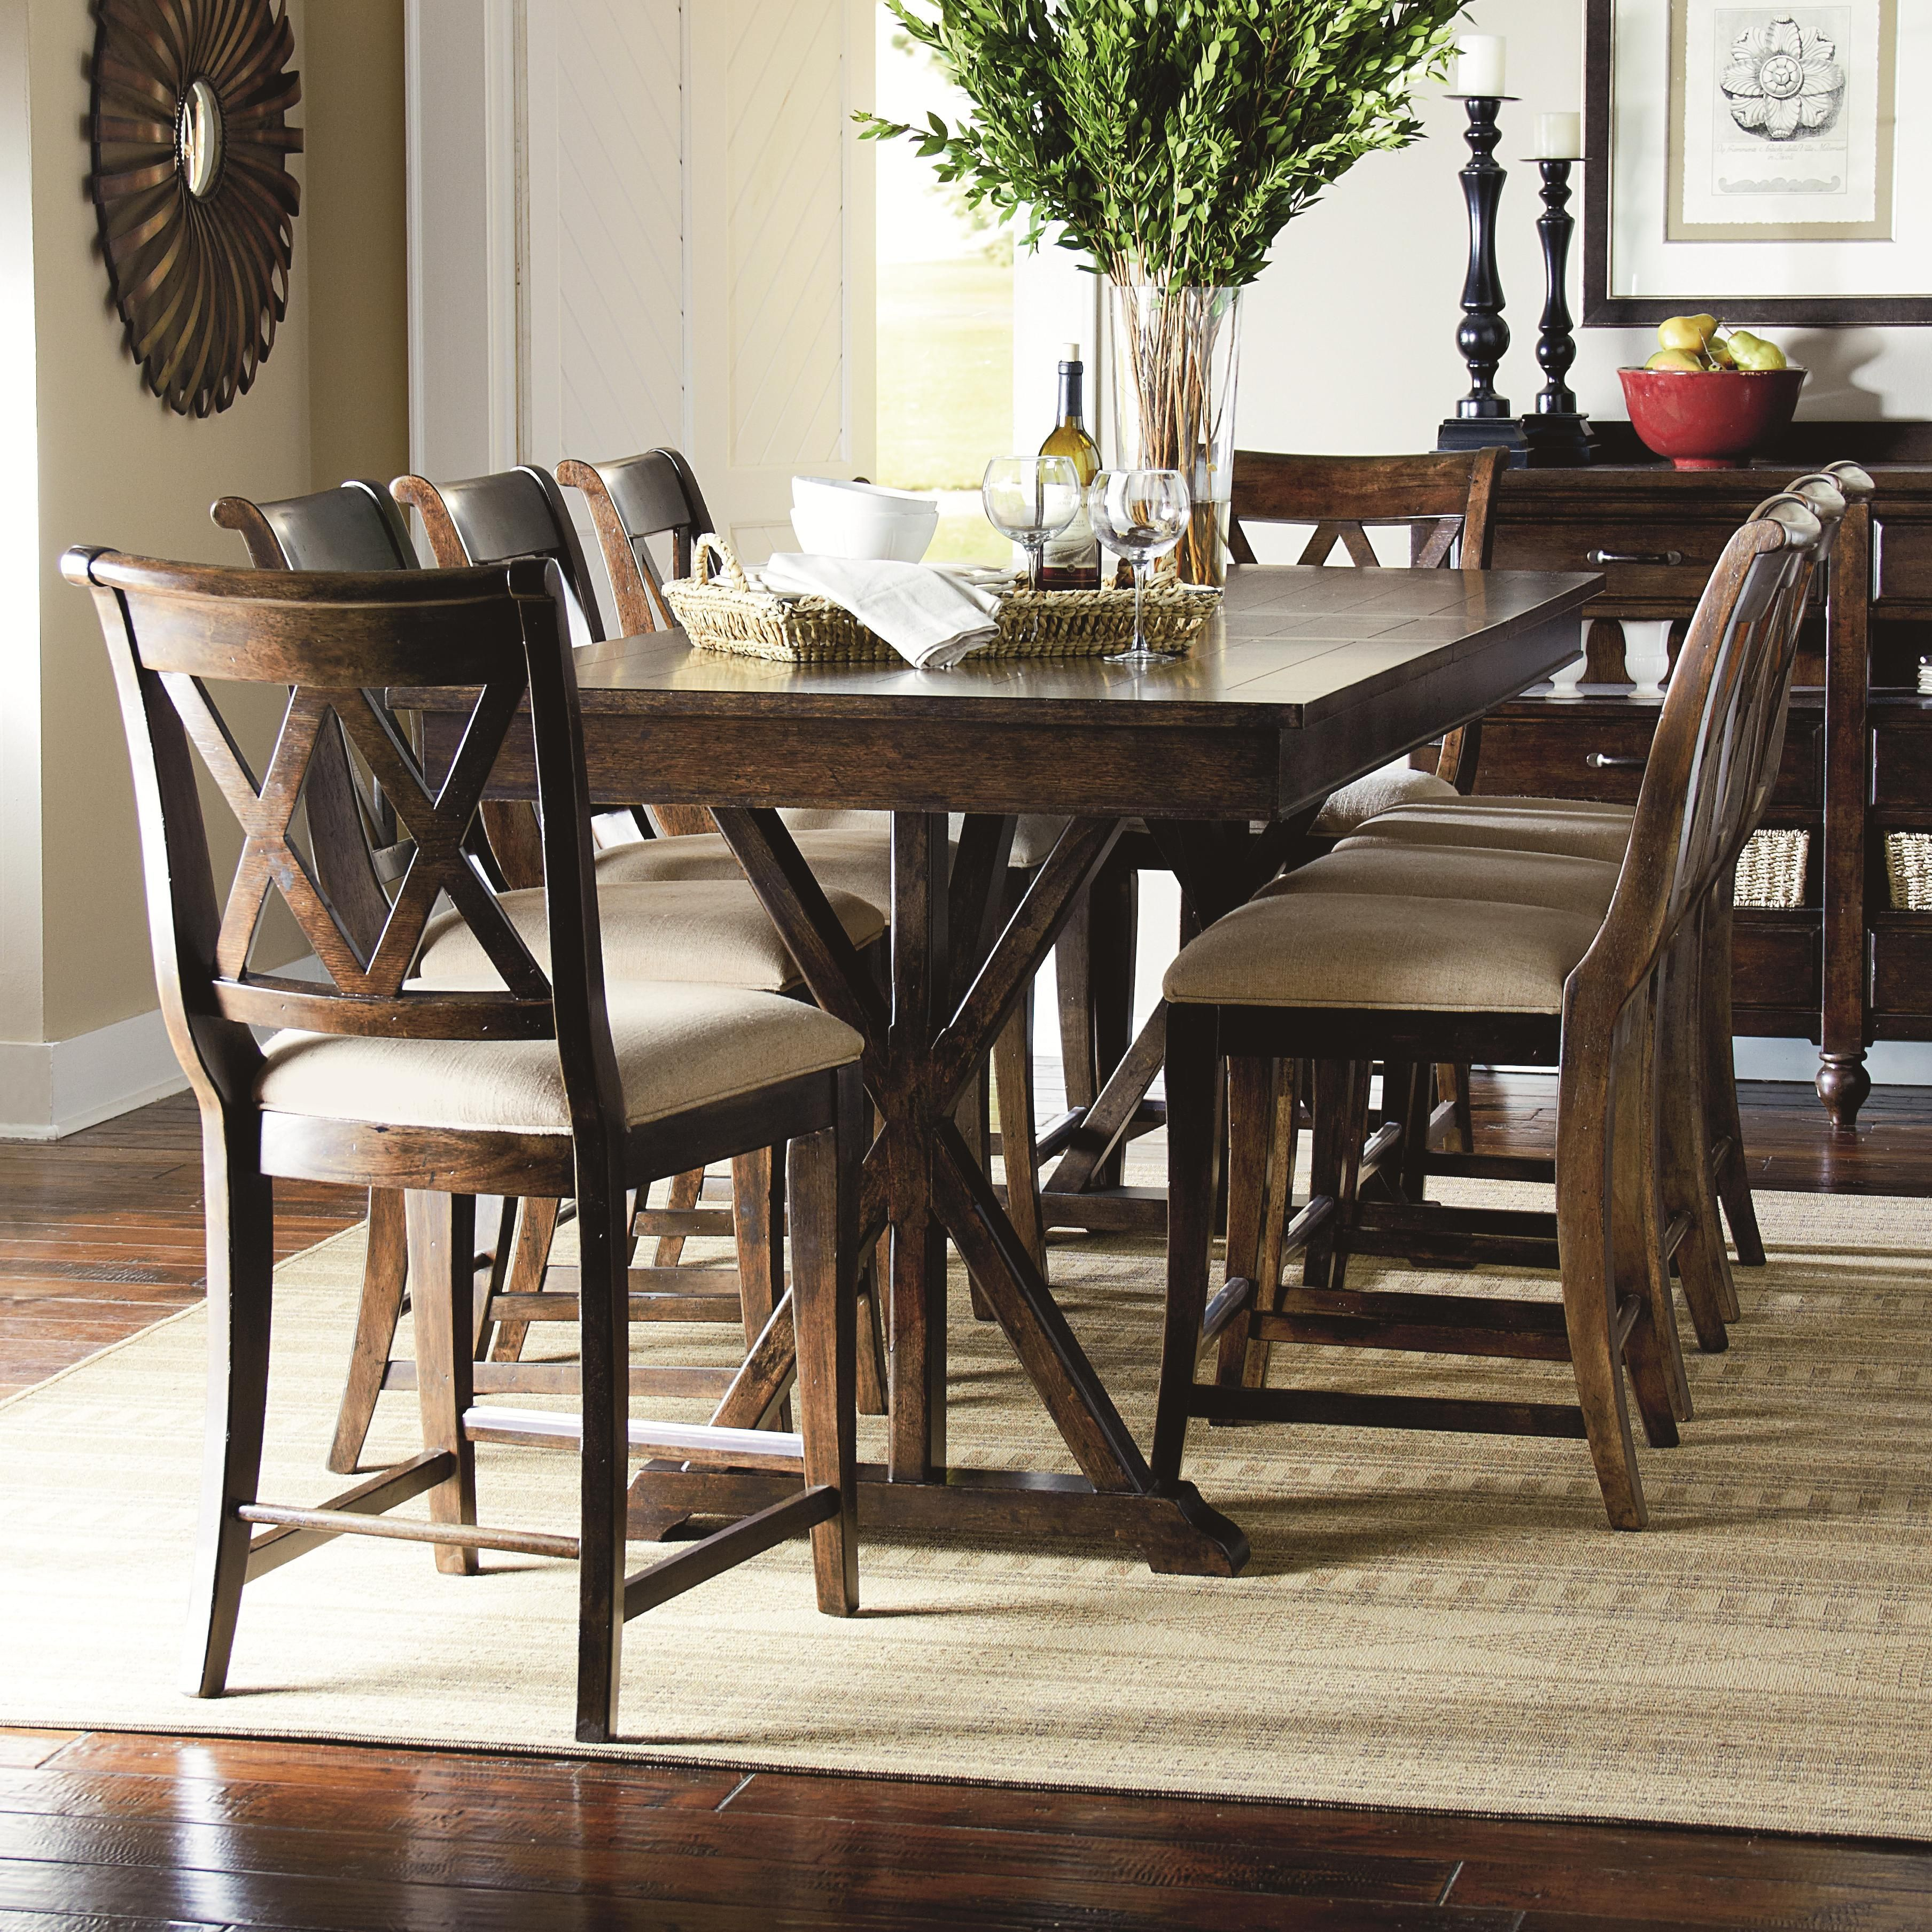 Thatcher 9 Piece Pub Dining Set By Legacy Classic. Dining Room Table SetsCasual  ...